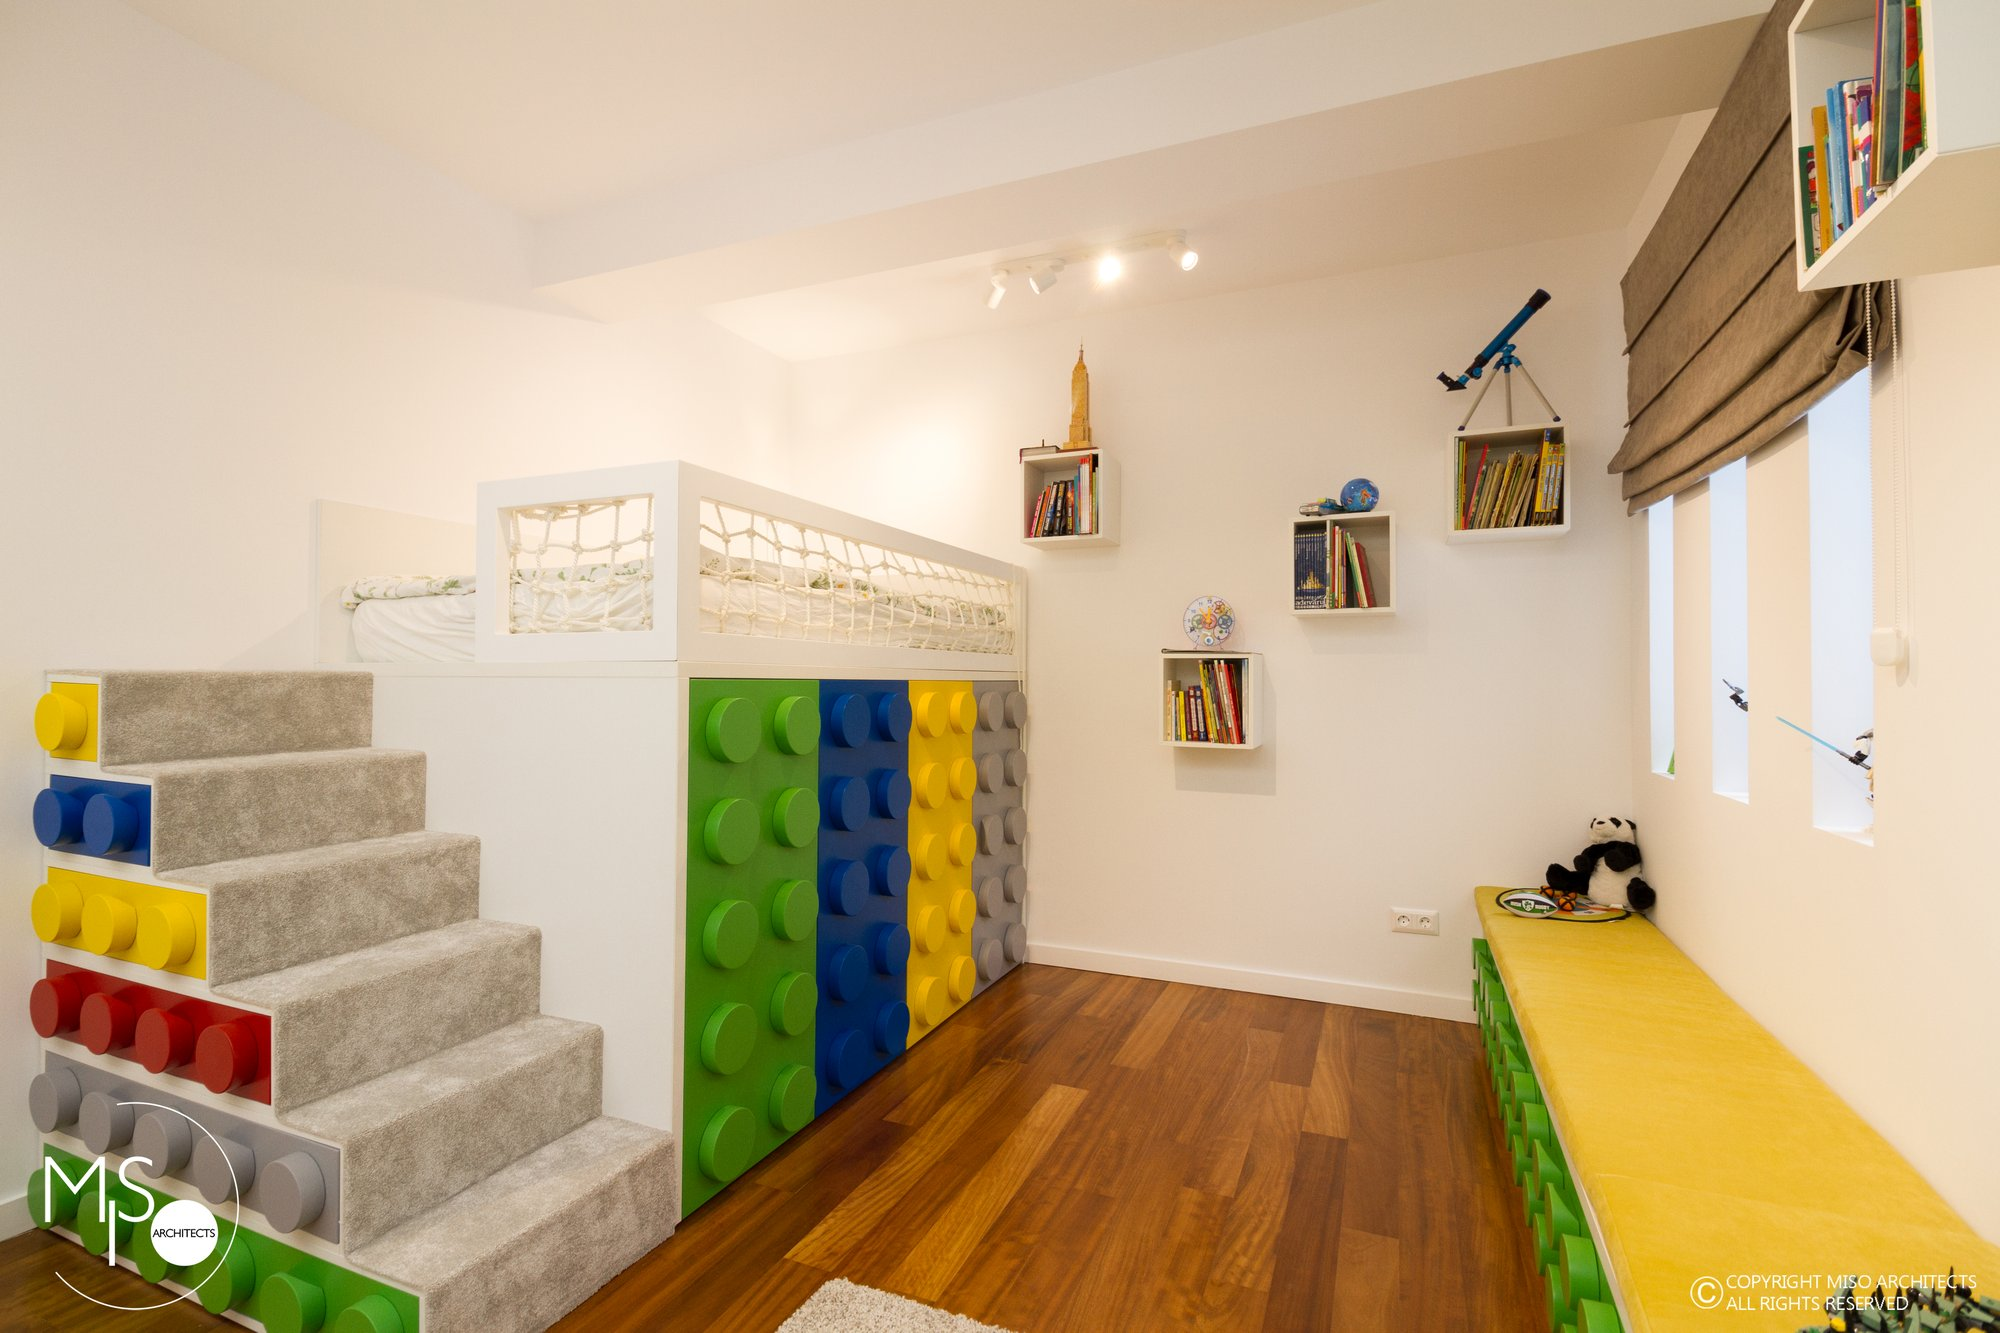 miso-architects-apartament-lego.jpg